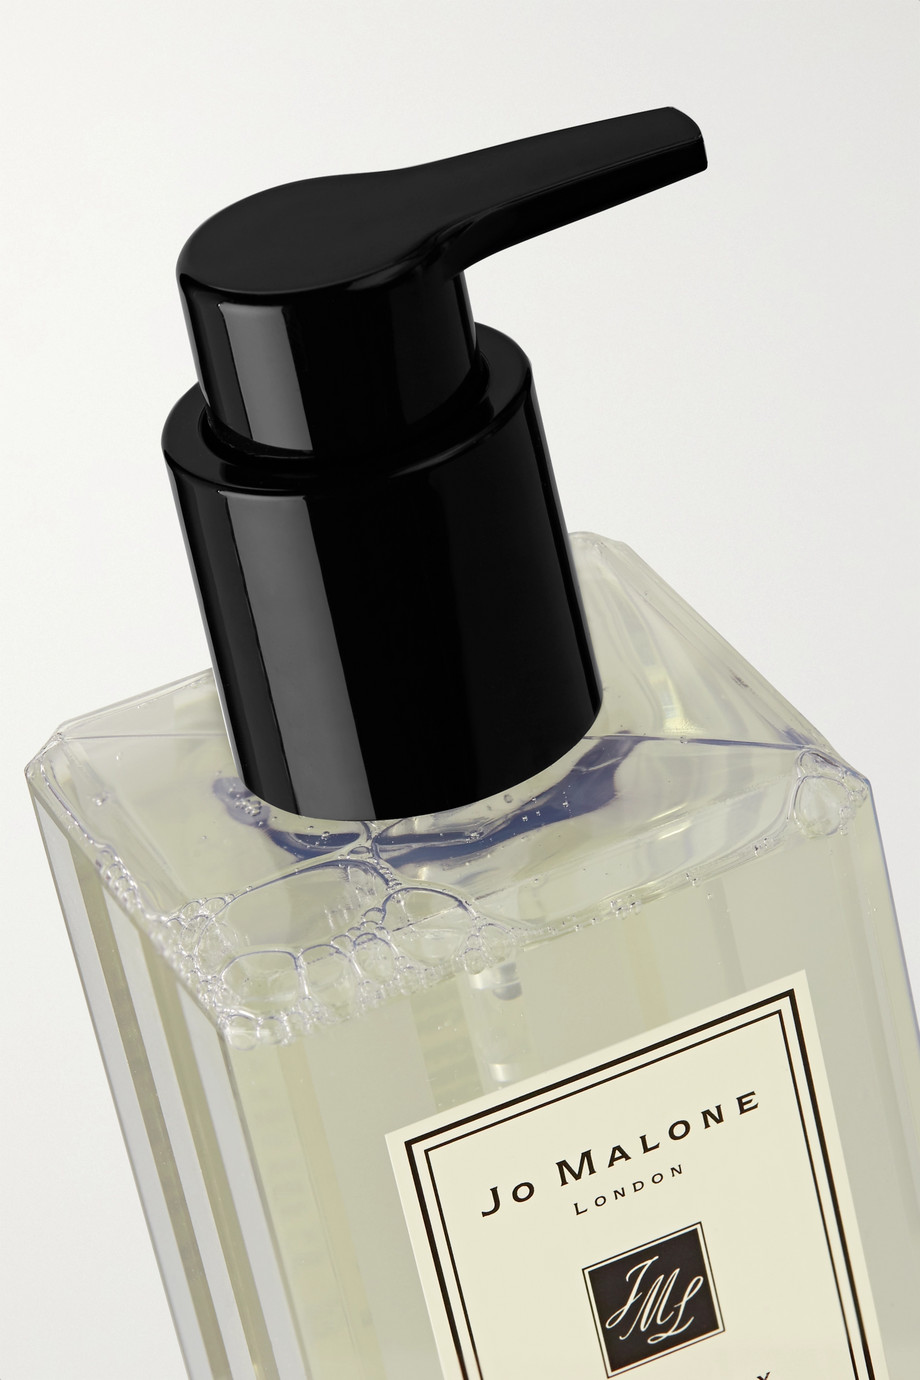 Jo Malone London Pomegranate Noir Body & Hand Wash, 250 ml – Waschgel